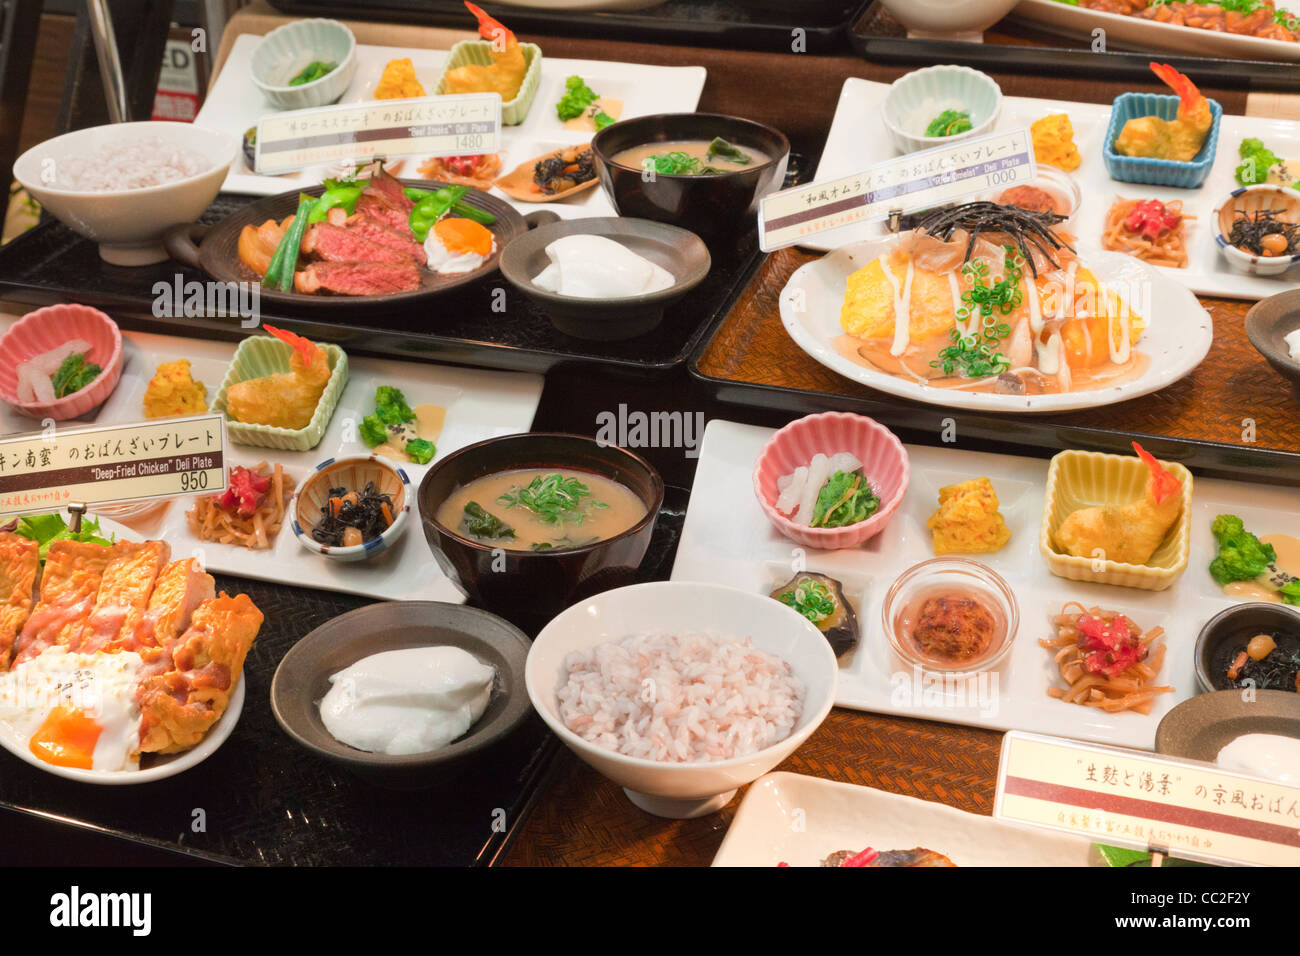 Replica or plastic imitation food, outside a restaurant in Japan. - Stock Image